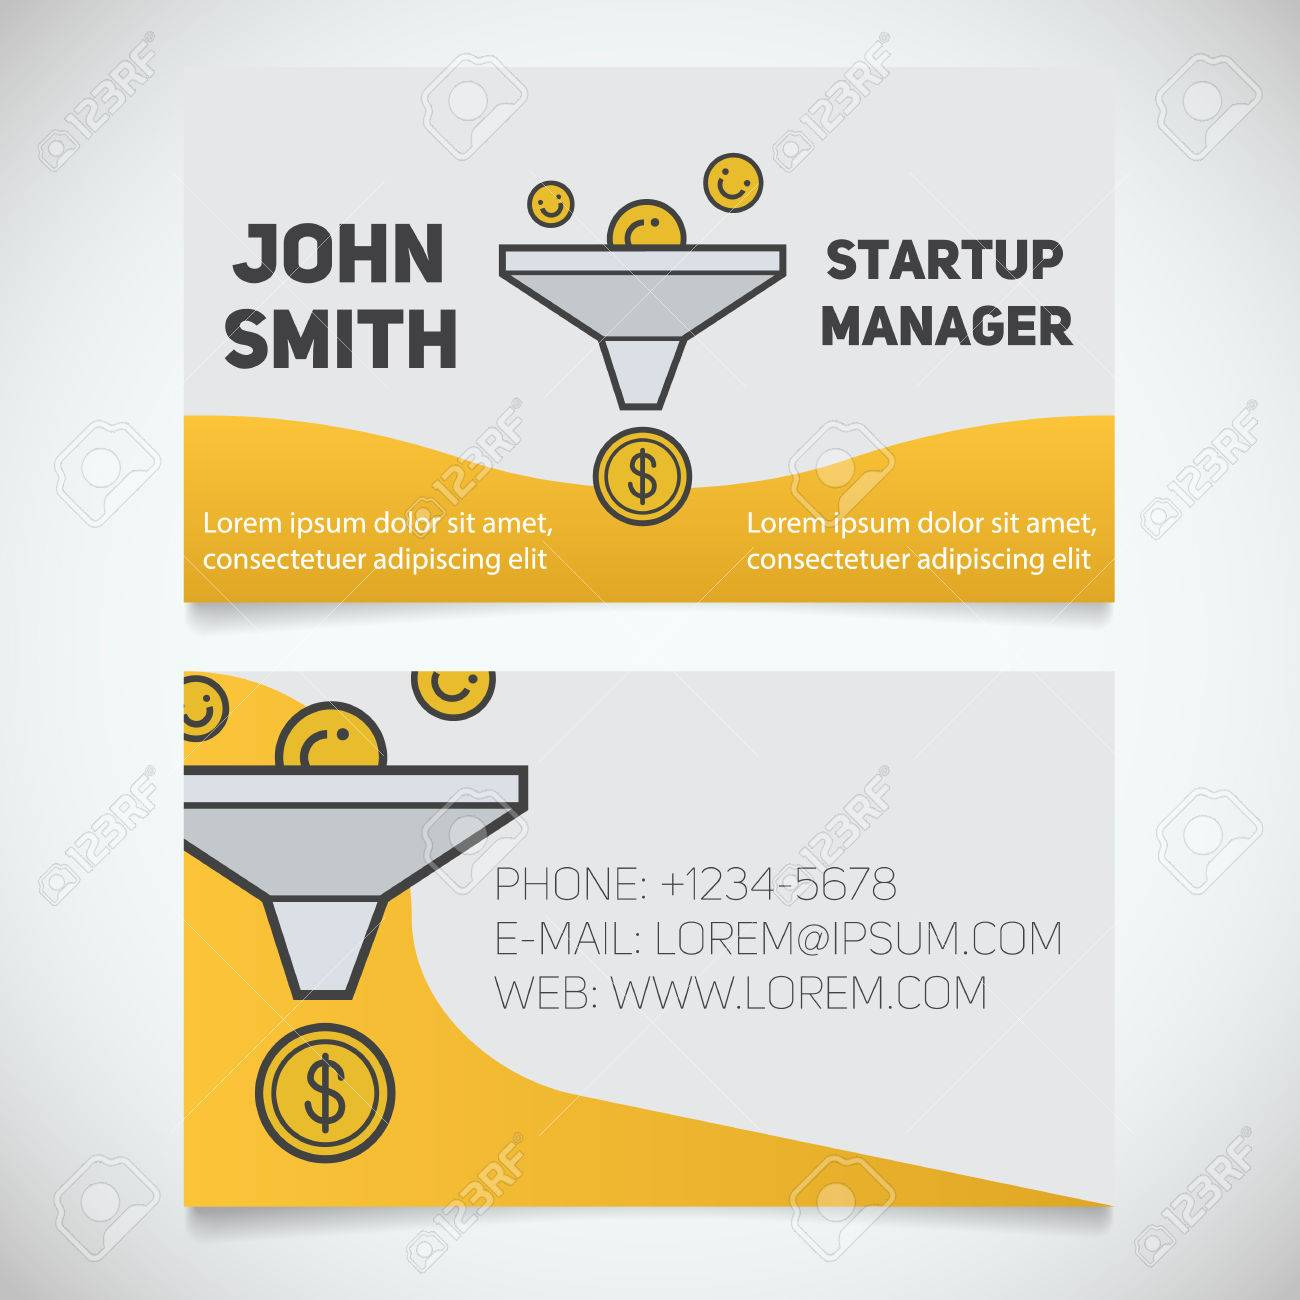 Steve jobs business card image collections free business cards startup business cards image collections free business cards business card print template startup manager sales funnel magicingreecefo Images